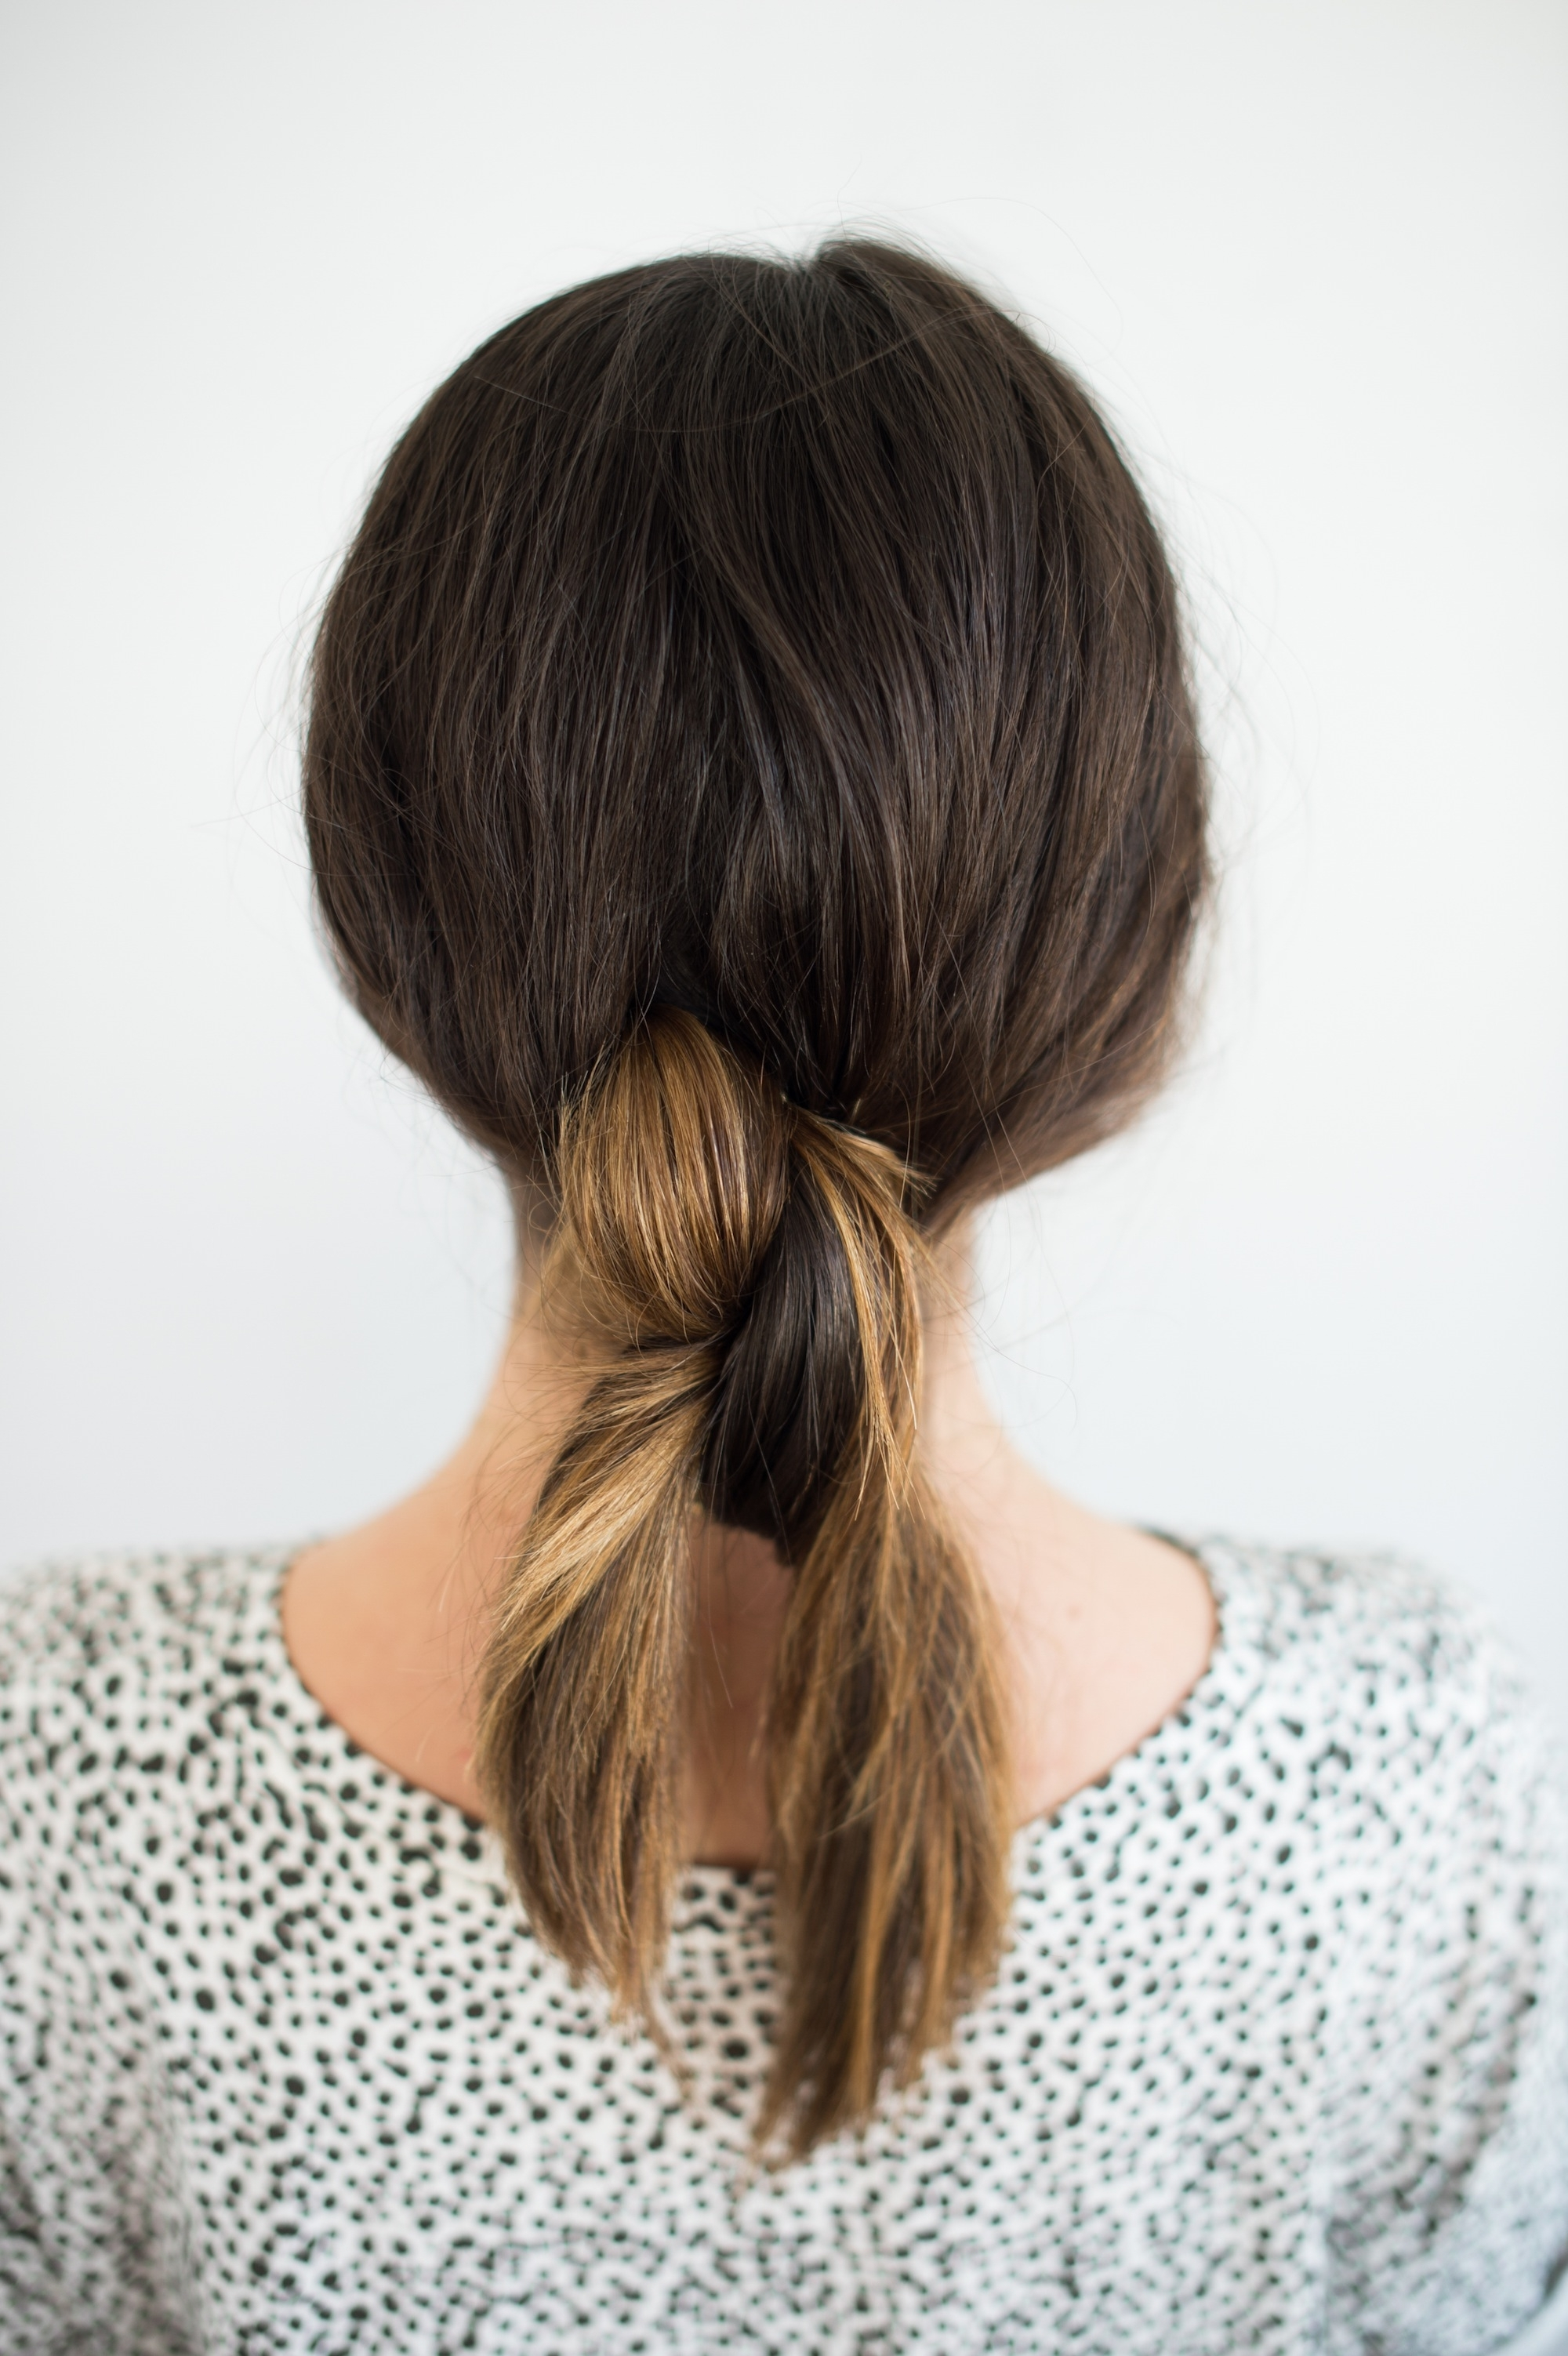 Hair Tutorial // The Double Knotted Pony – The Effortless Chic In Newest Knotted Ponytail Hairstyles (View 13 of 20)